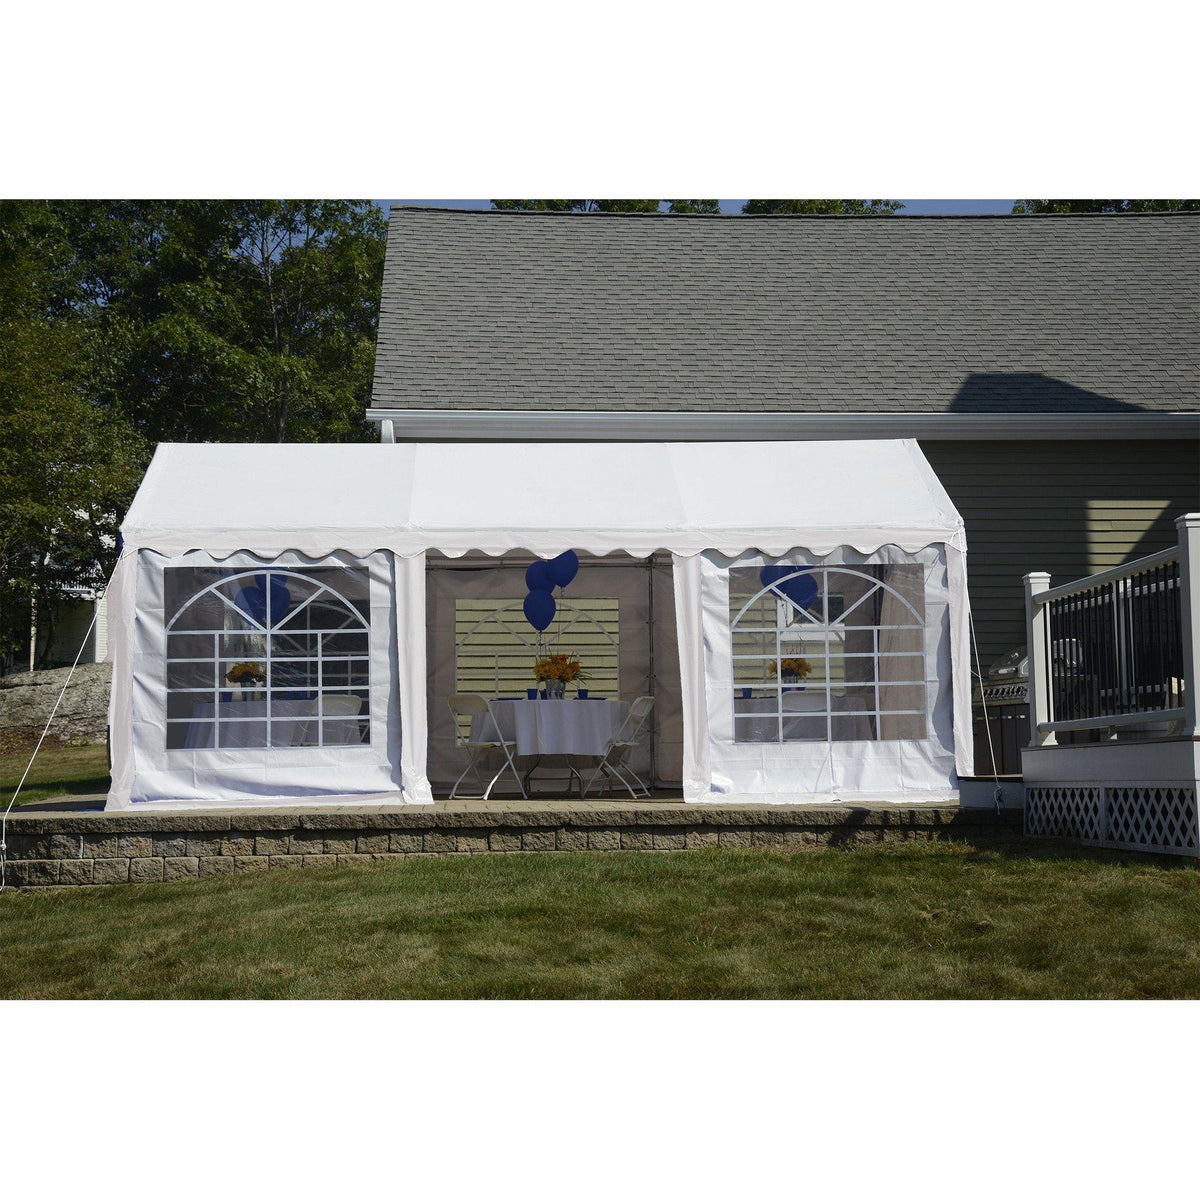 ShelterLogic Enclosure Kit with Windows, White, 10 x 20 ft. (Party Tent Cover and Frame Sold Separately)